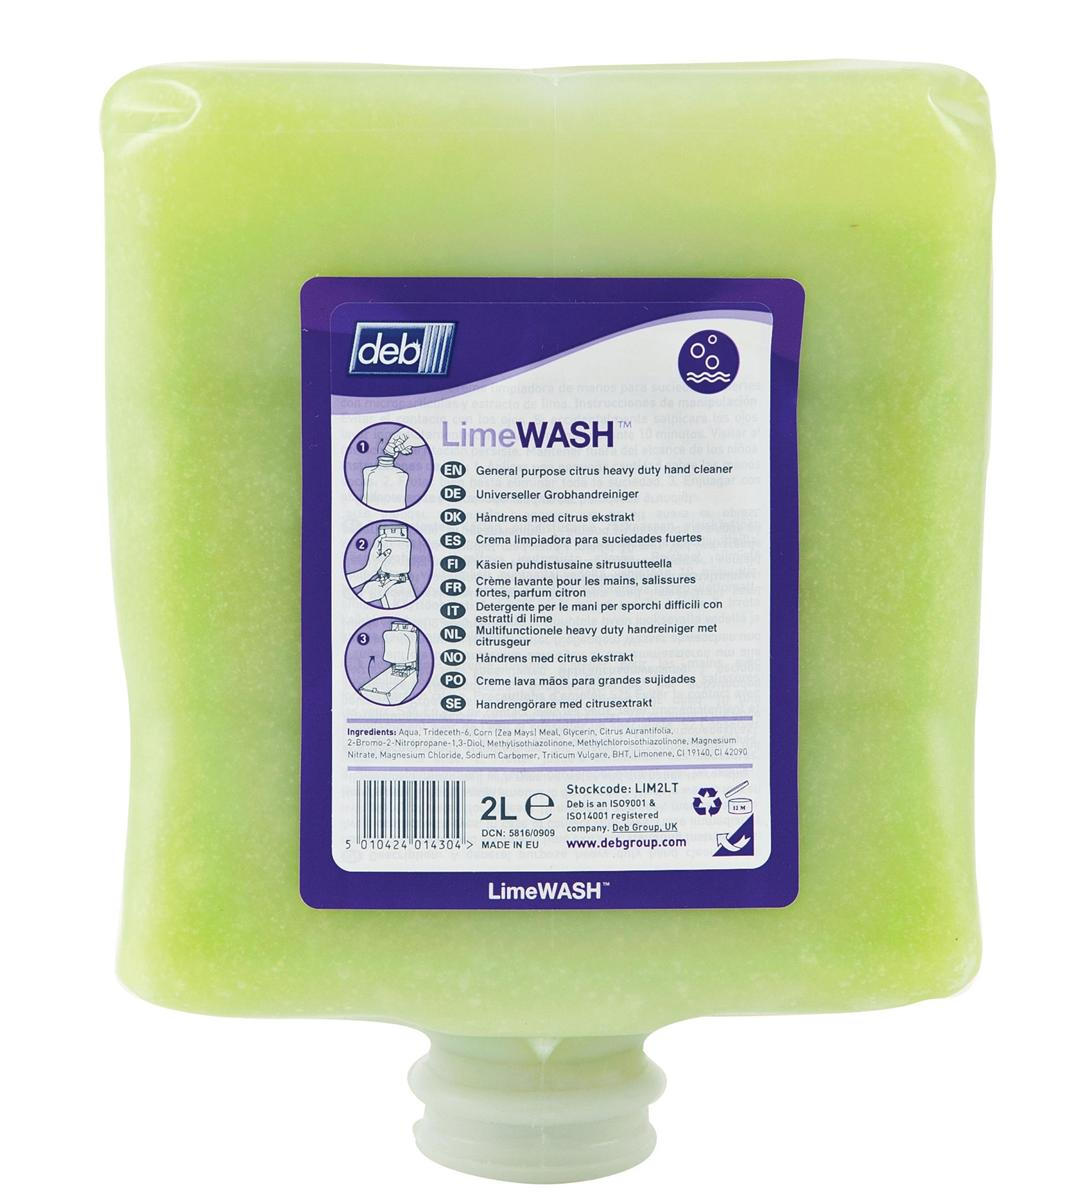 DEB Limewash Hand Soap Refill Cartridge 2 Litre Ref N03831